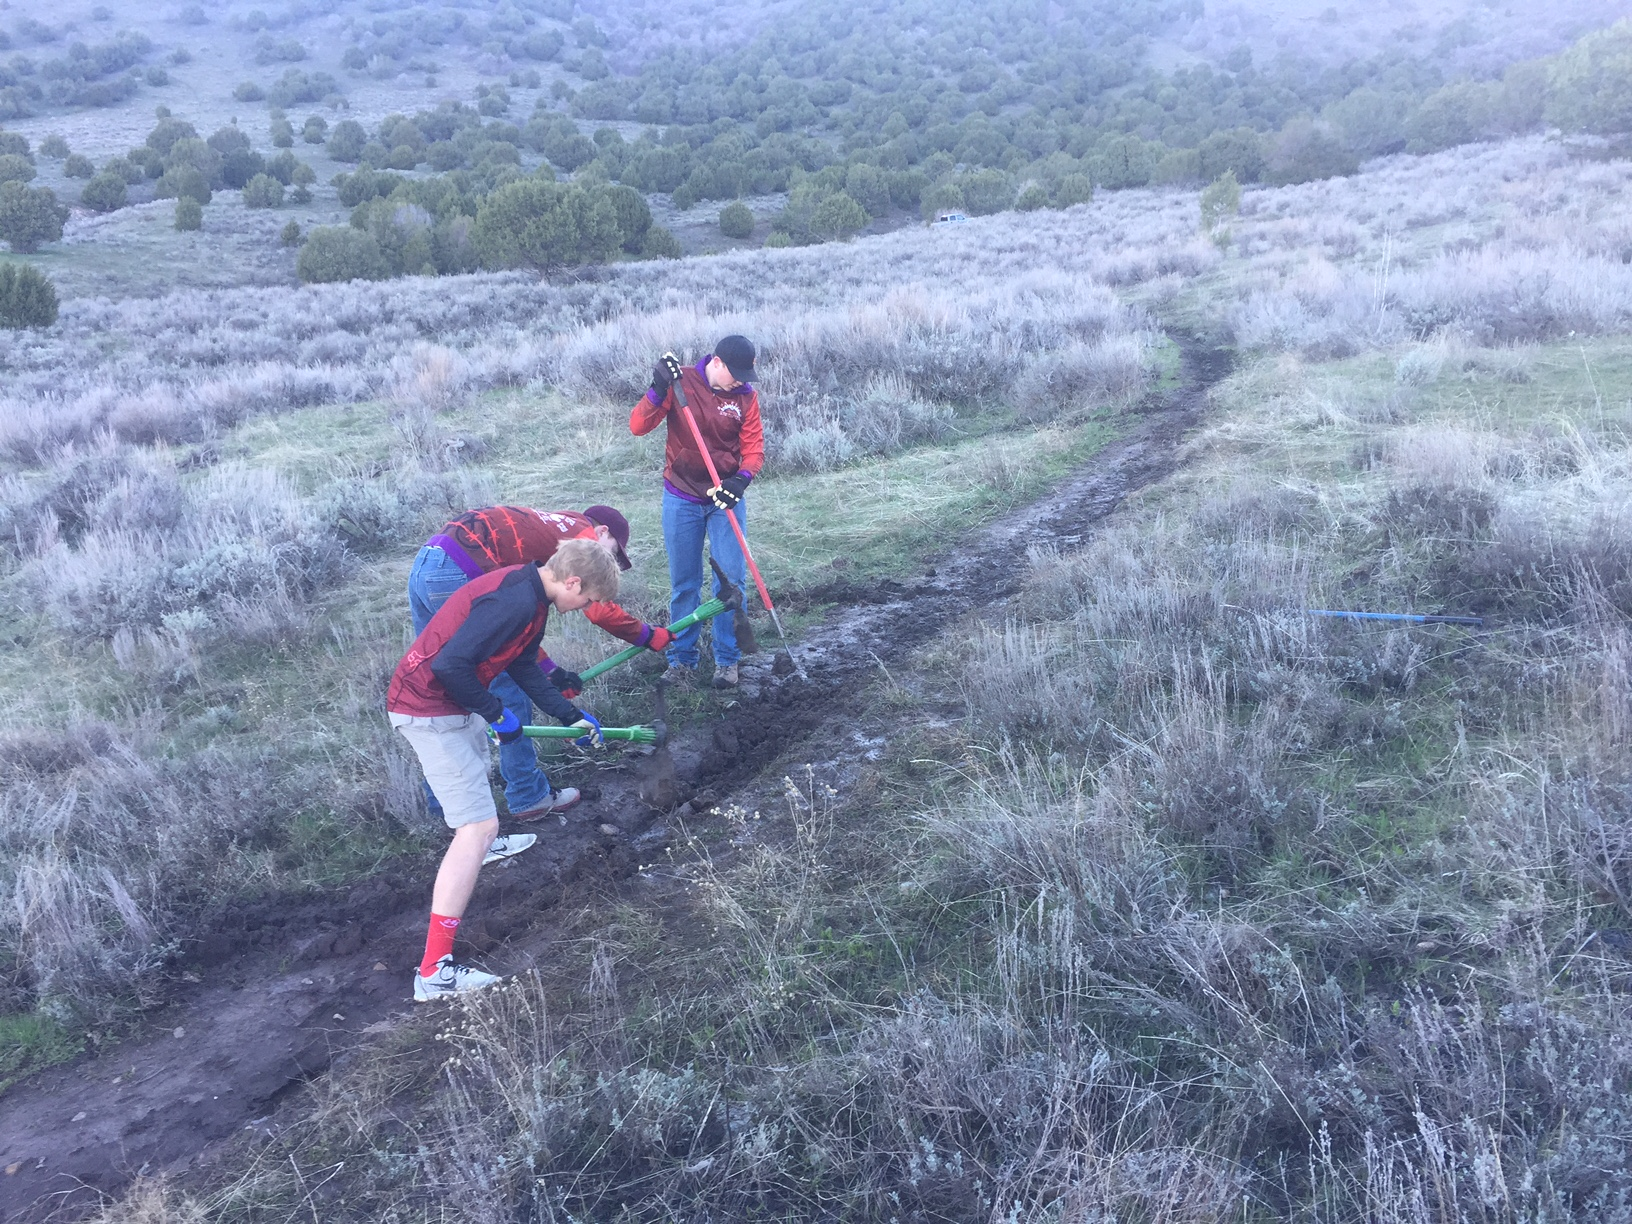 Pictured above: Box Elder Composite Team providing care to fix ruts on a muddy trail - 2017